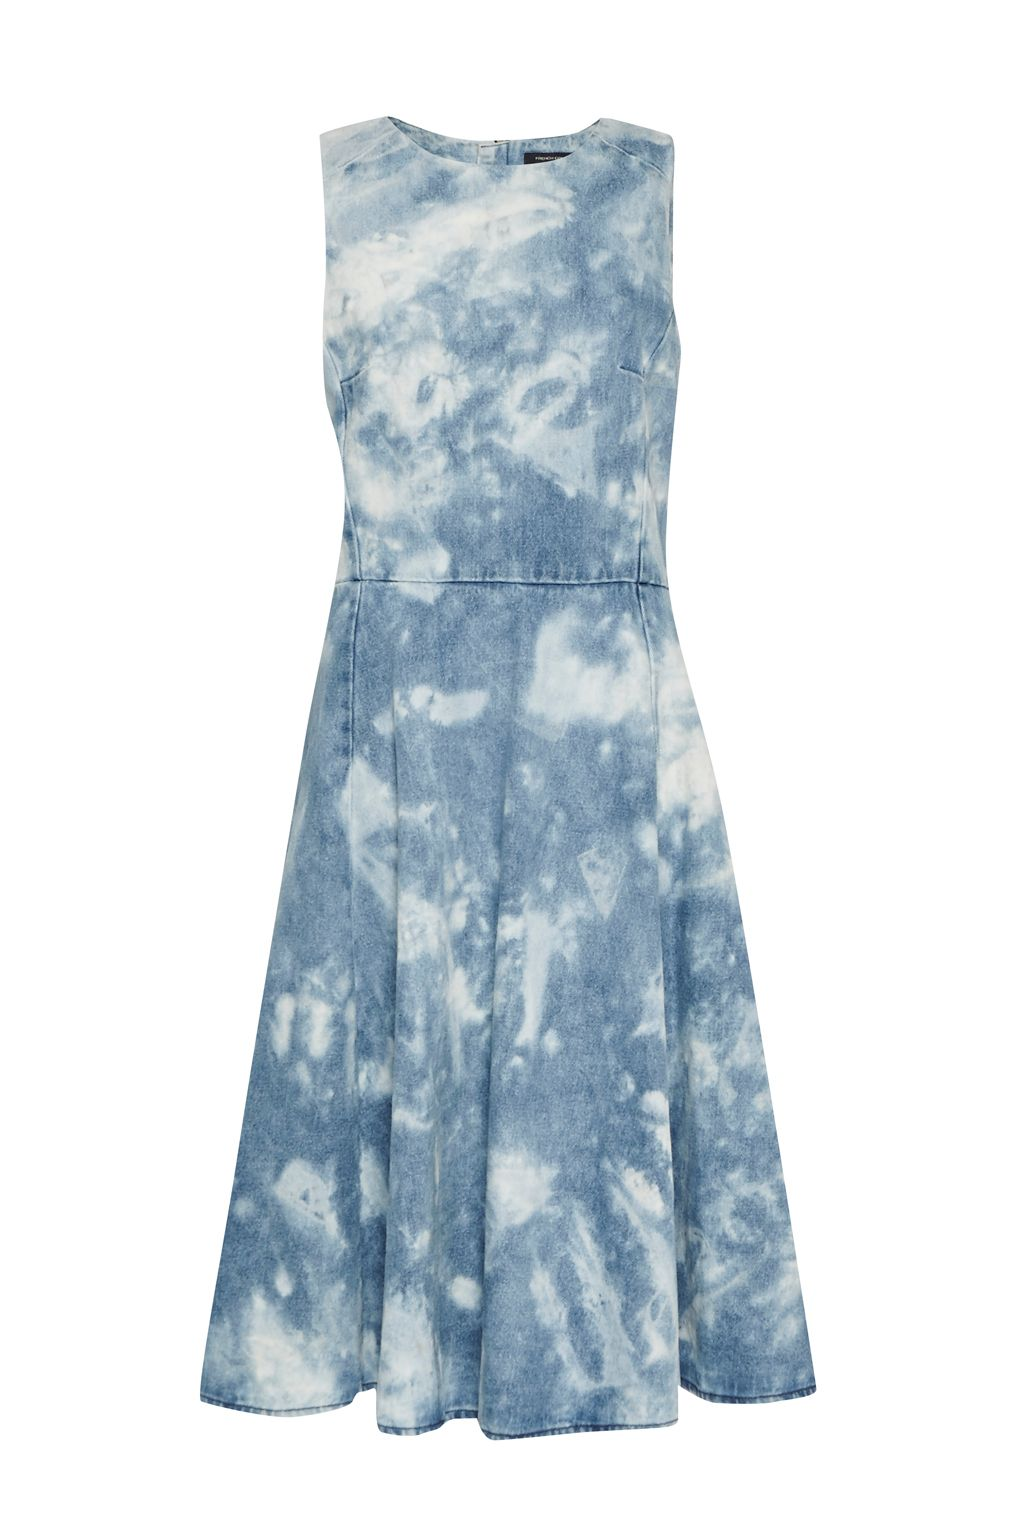 French Connection Indigo Marble Denim Dress, Blue